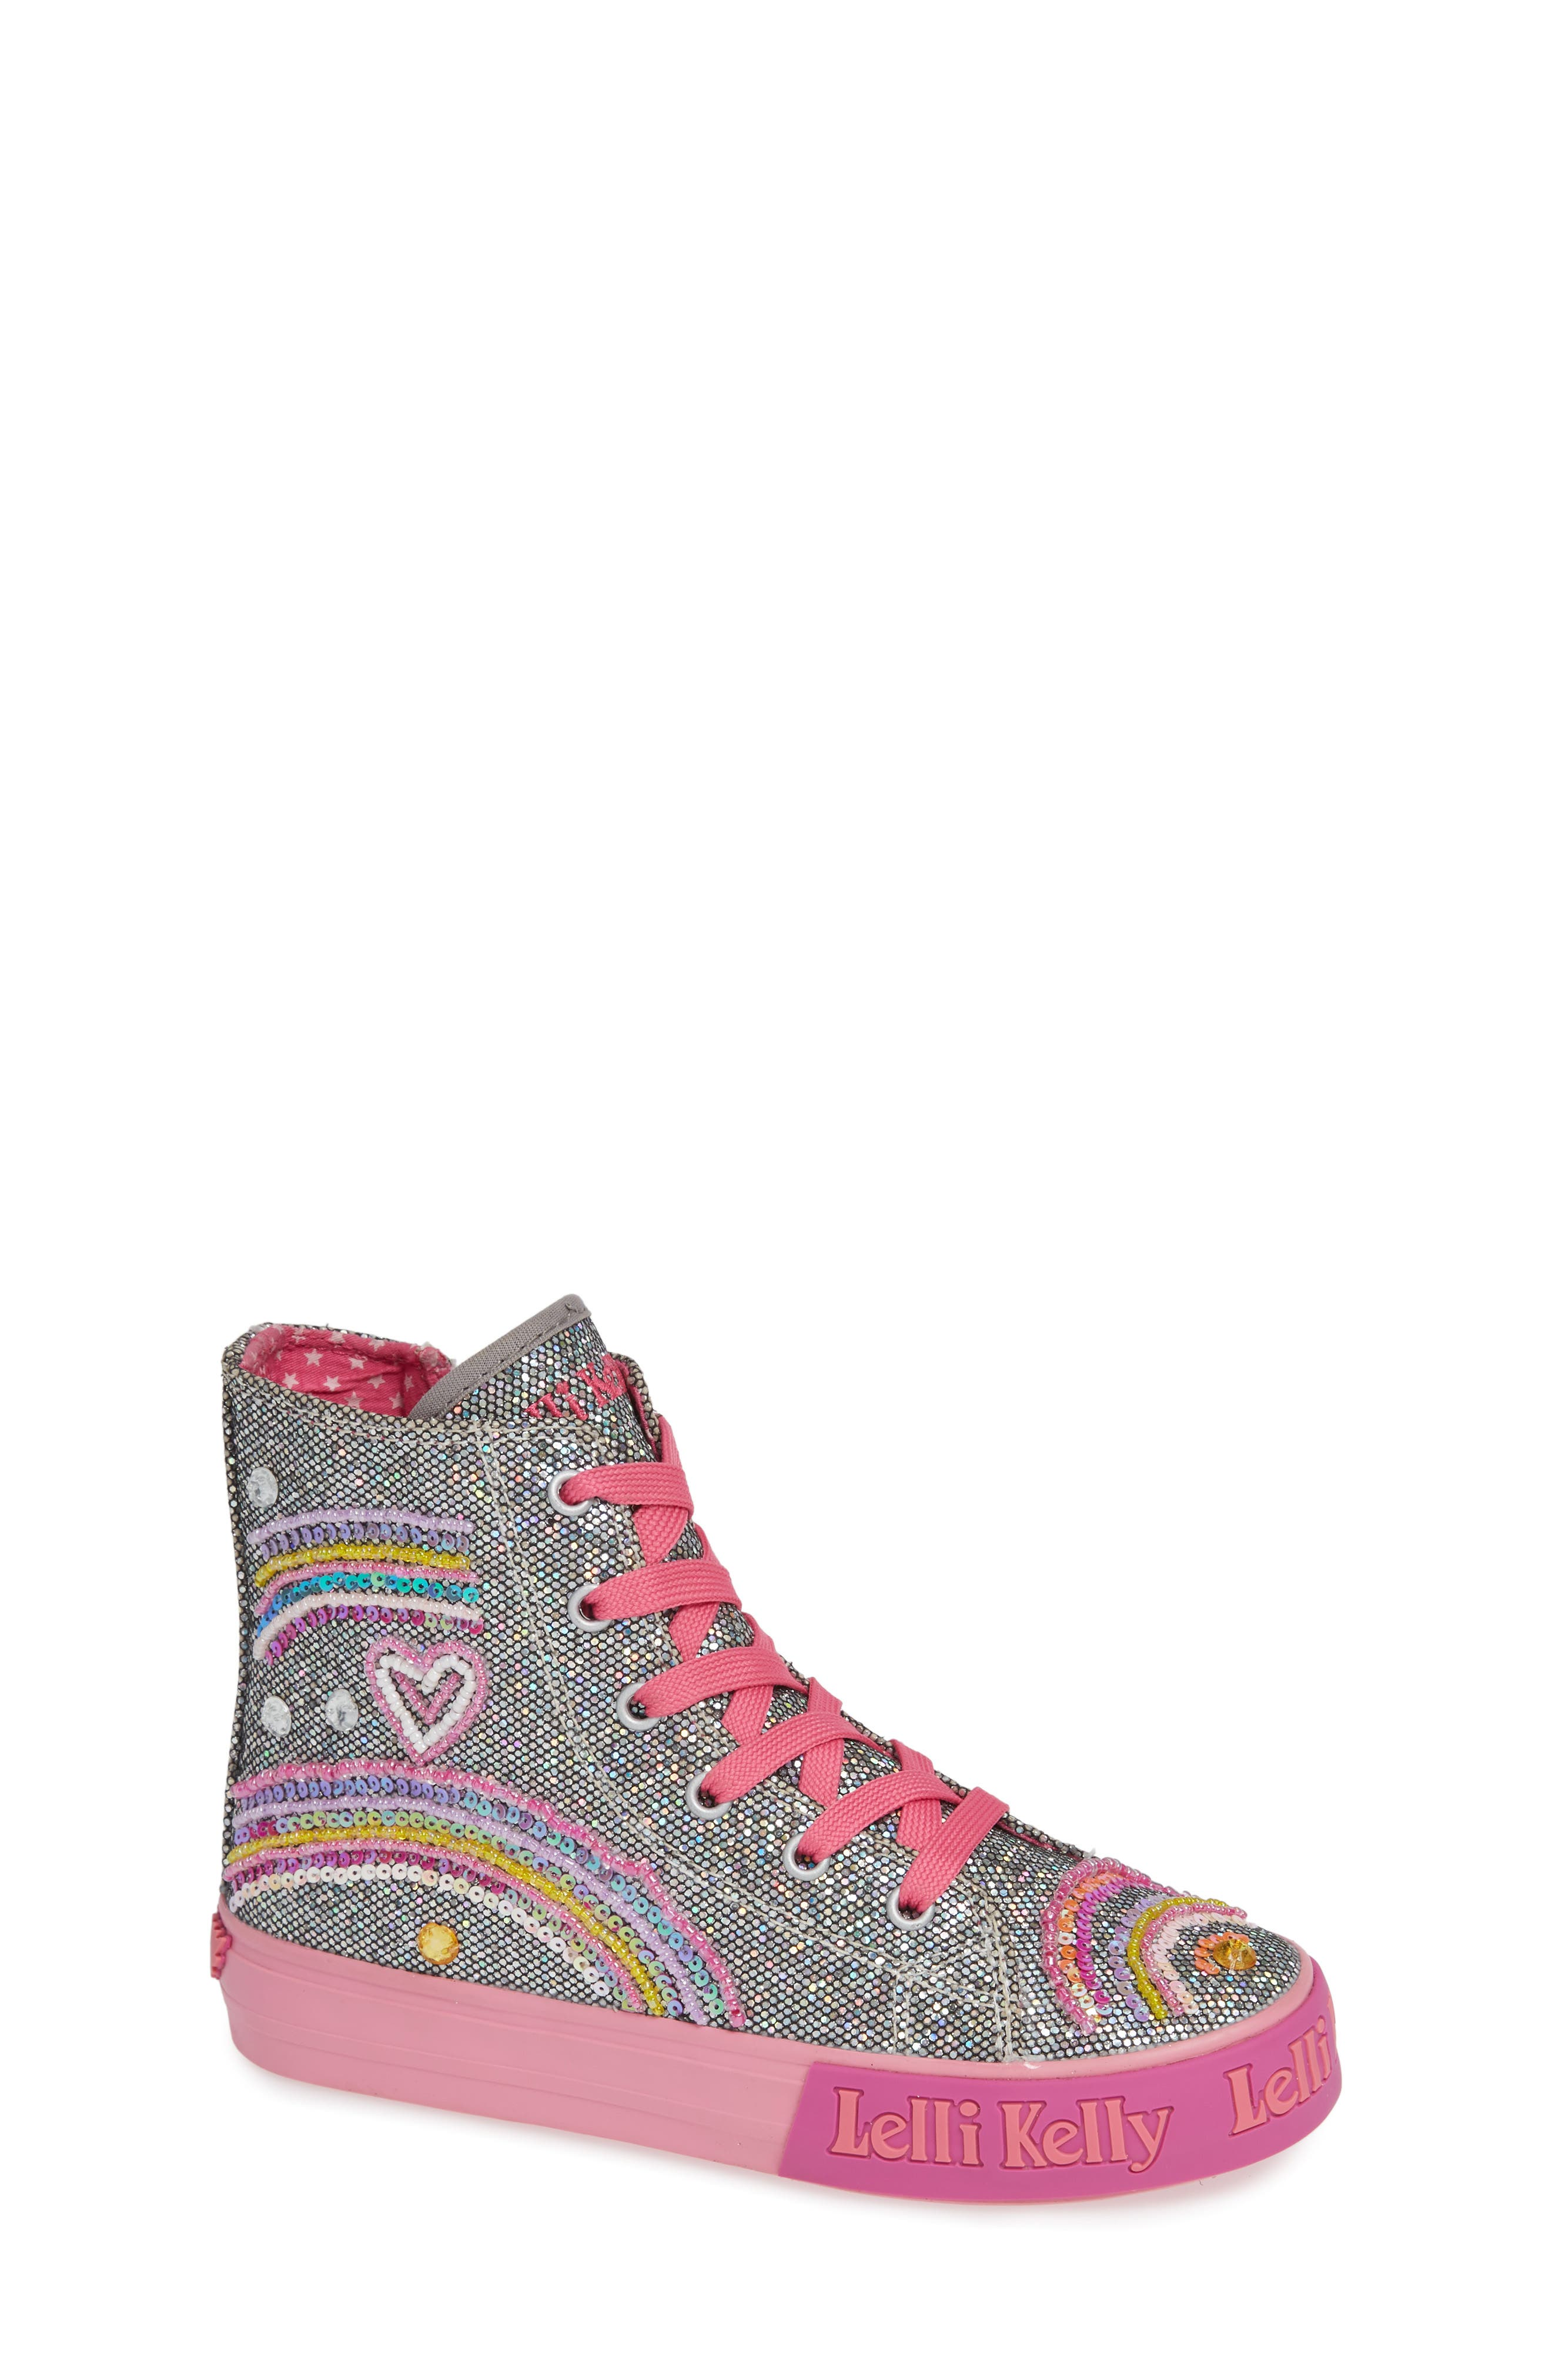 Beaded High Top Sneaker,                             Main thumbnail 1, color,                             PEWTER